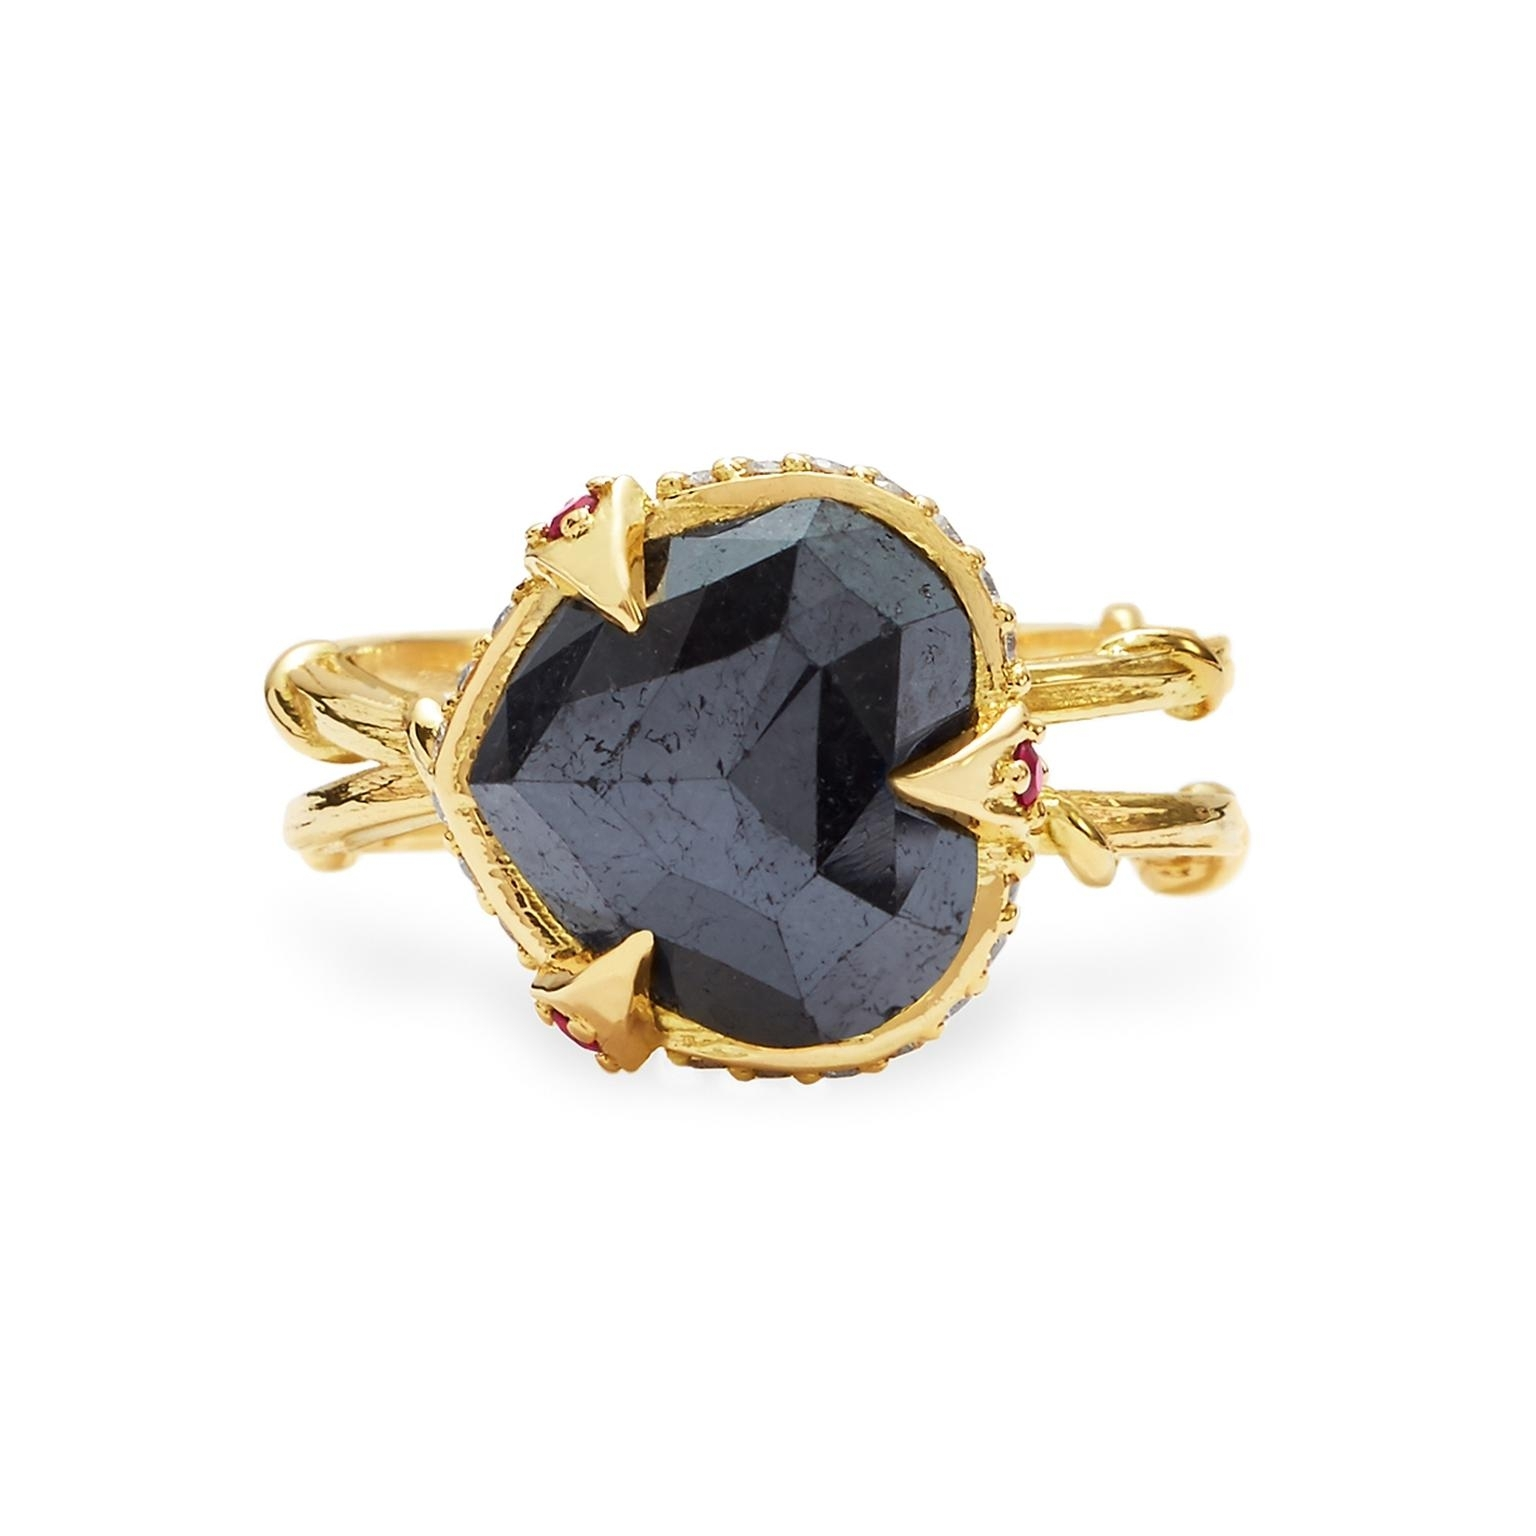 Intrique Crown Black Diamond Engagement Ring | Karen Karch | The In Most Popular Vintage Style Black Diamond Engagement Rings (View 7 of 15)